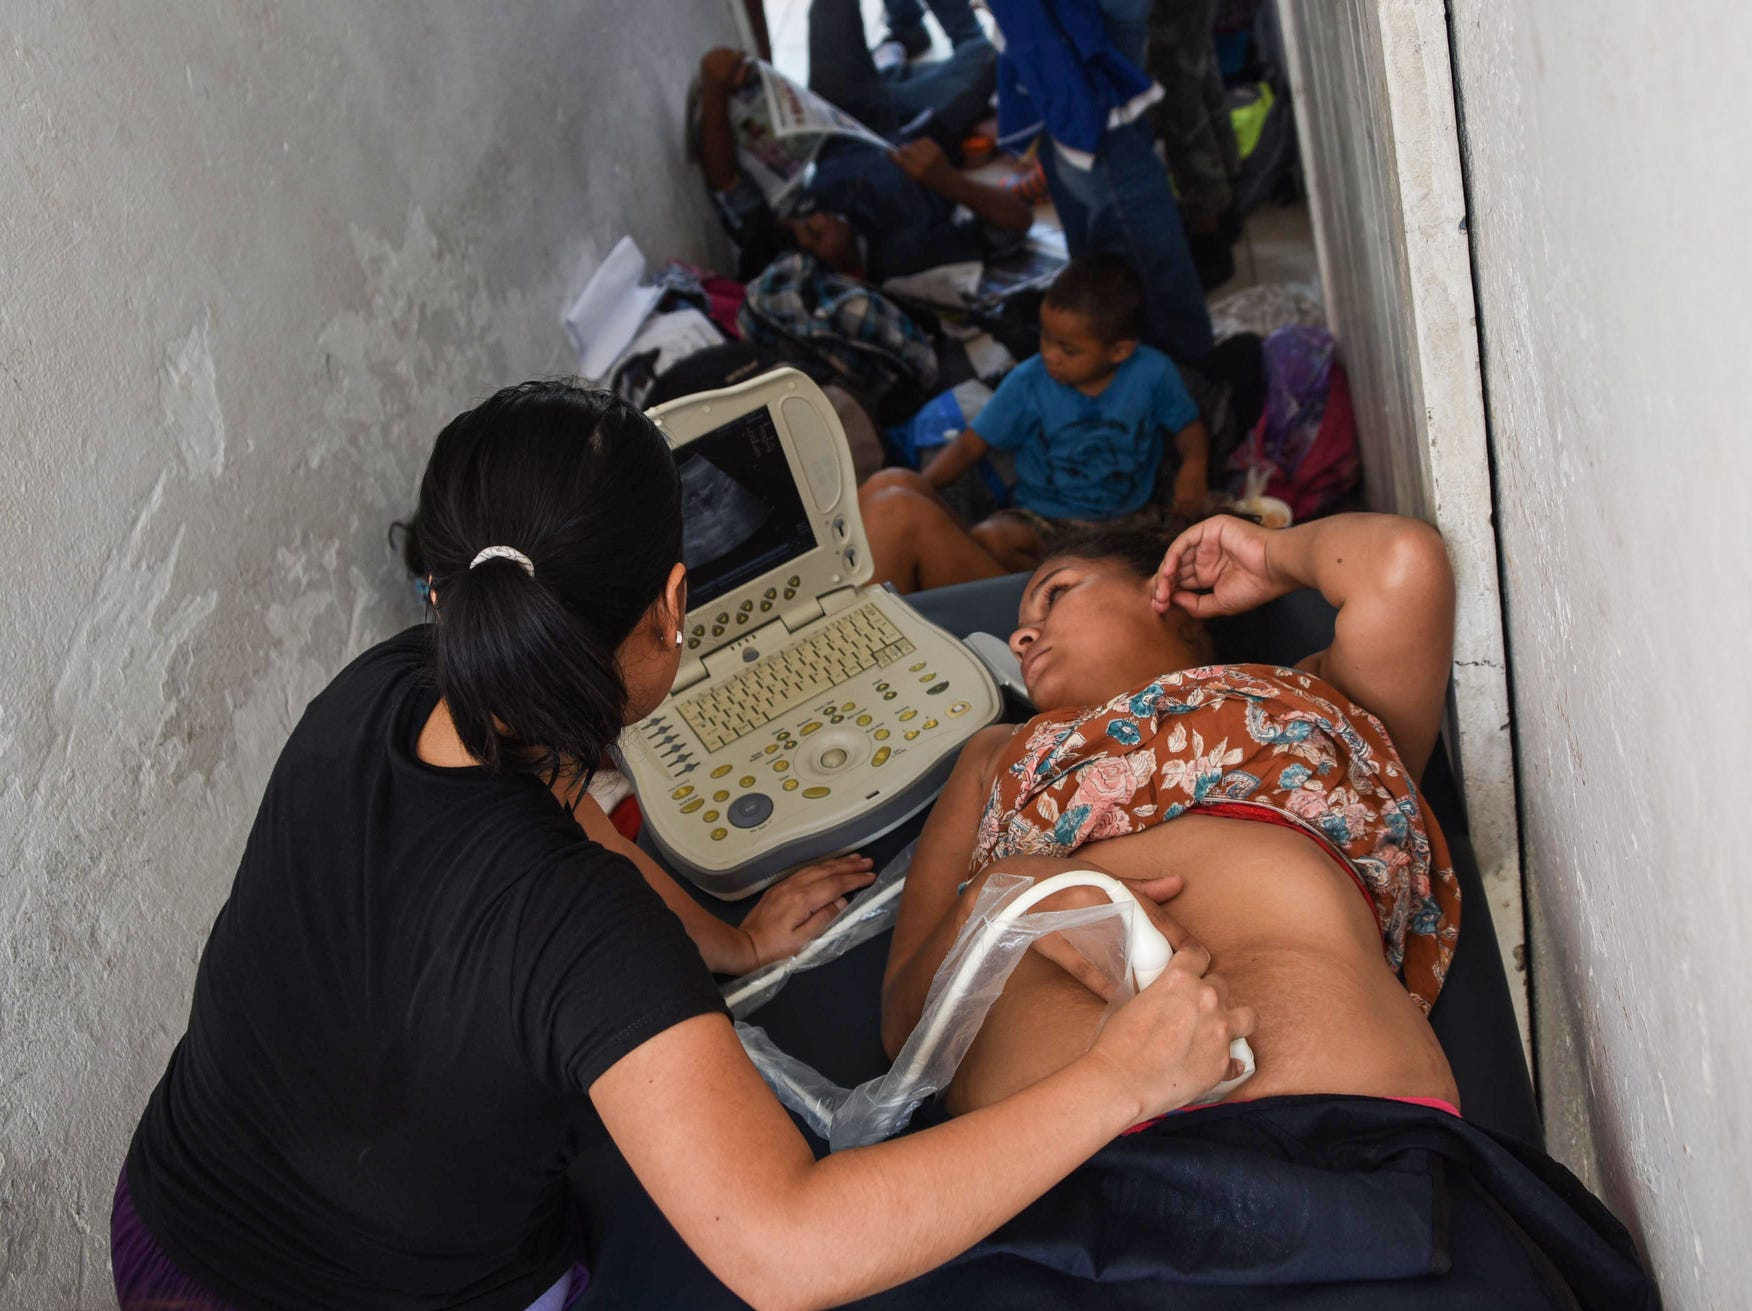 A Honduran migrant woman has an ultrasound done to check his pregnancy, on Tuesday, during a stop in their journey at the Central Park in Huixtla, Chiapas state, Mexico.